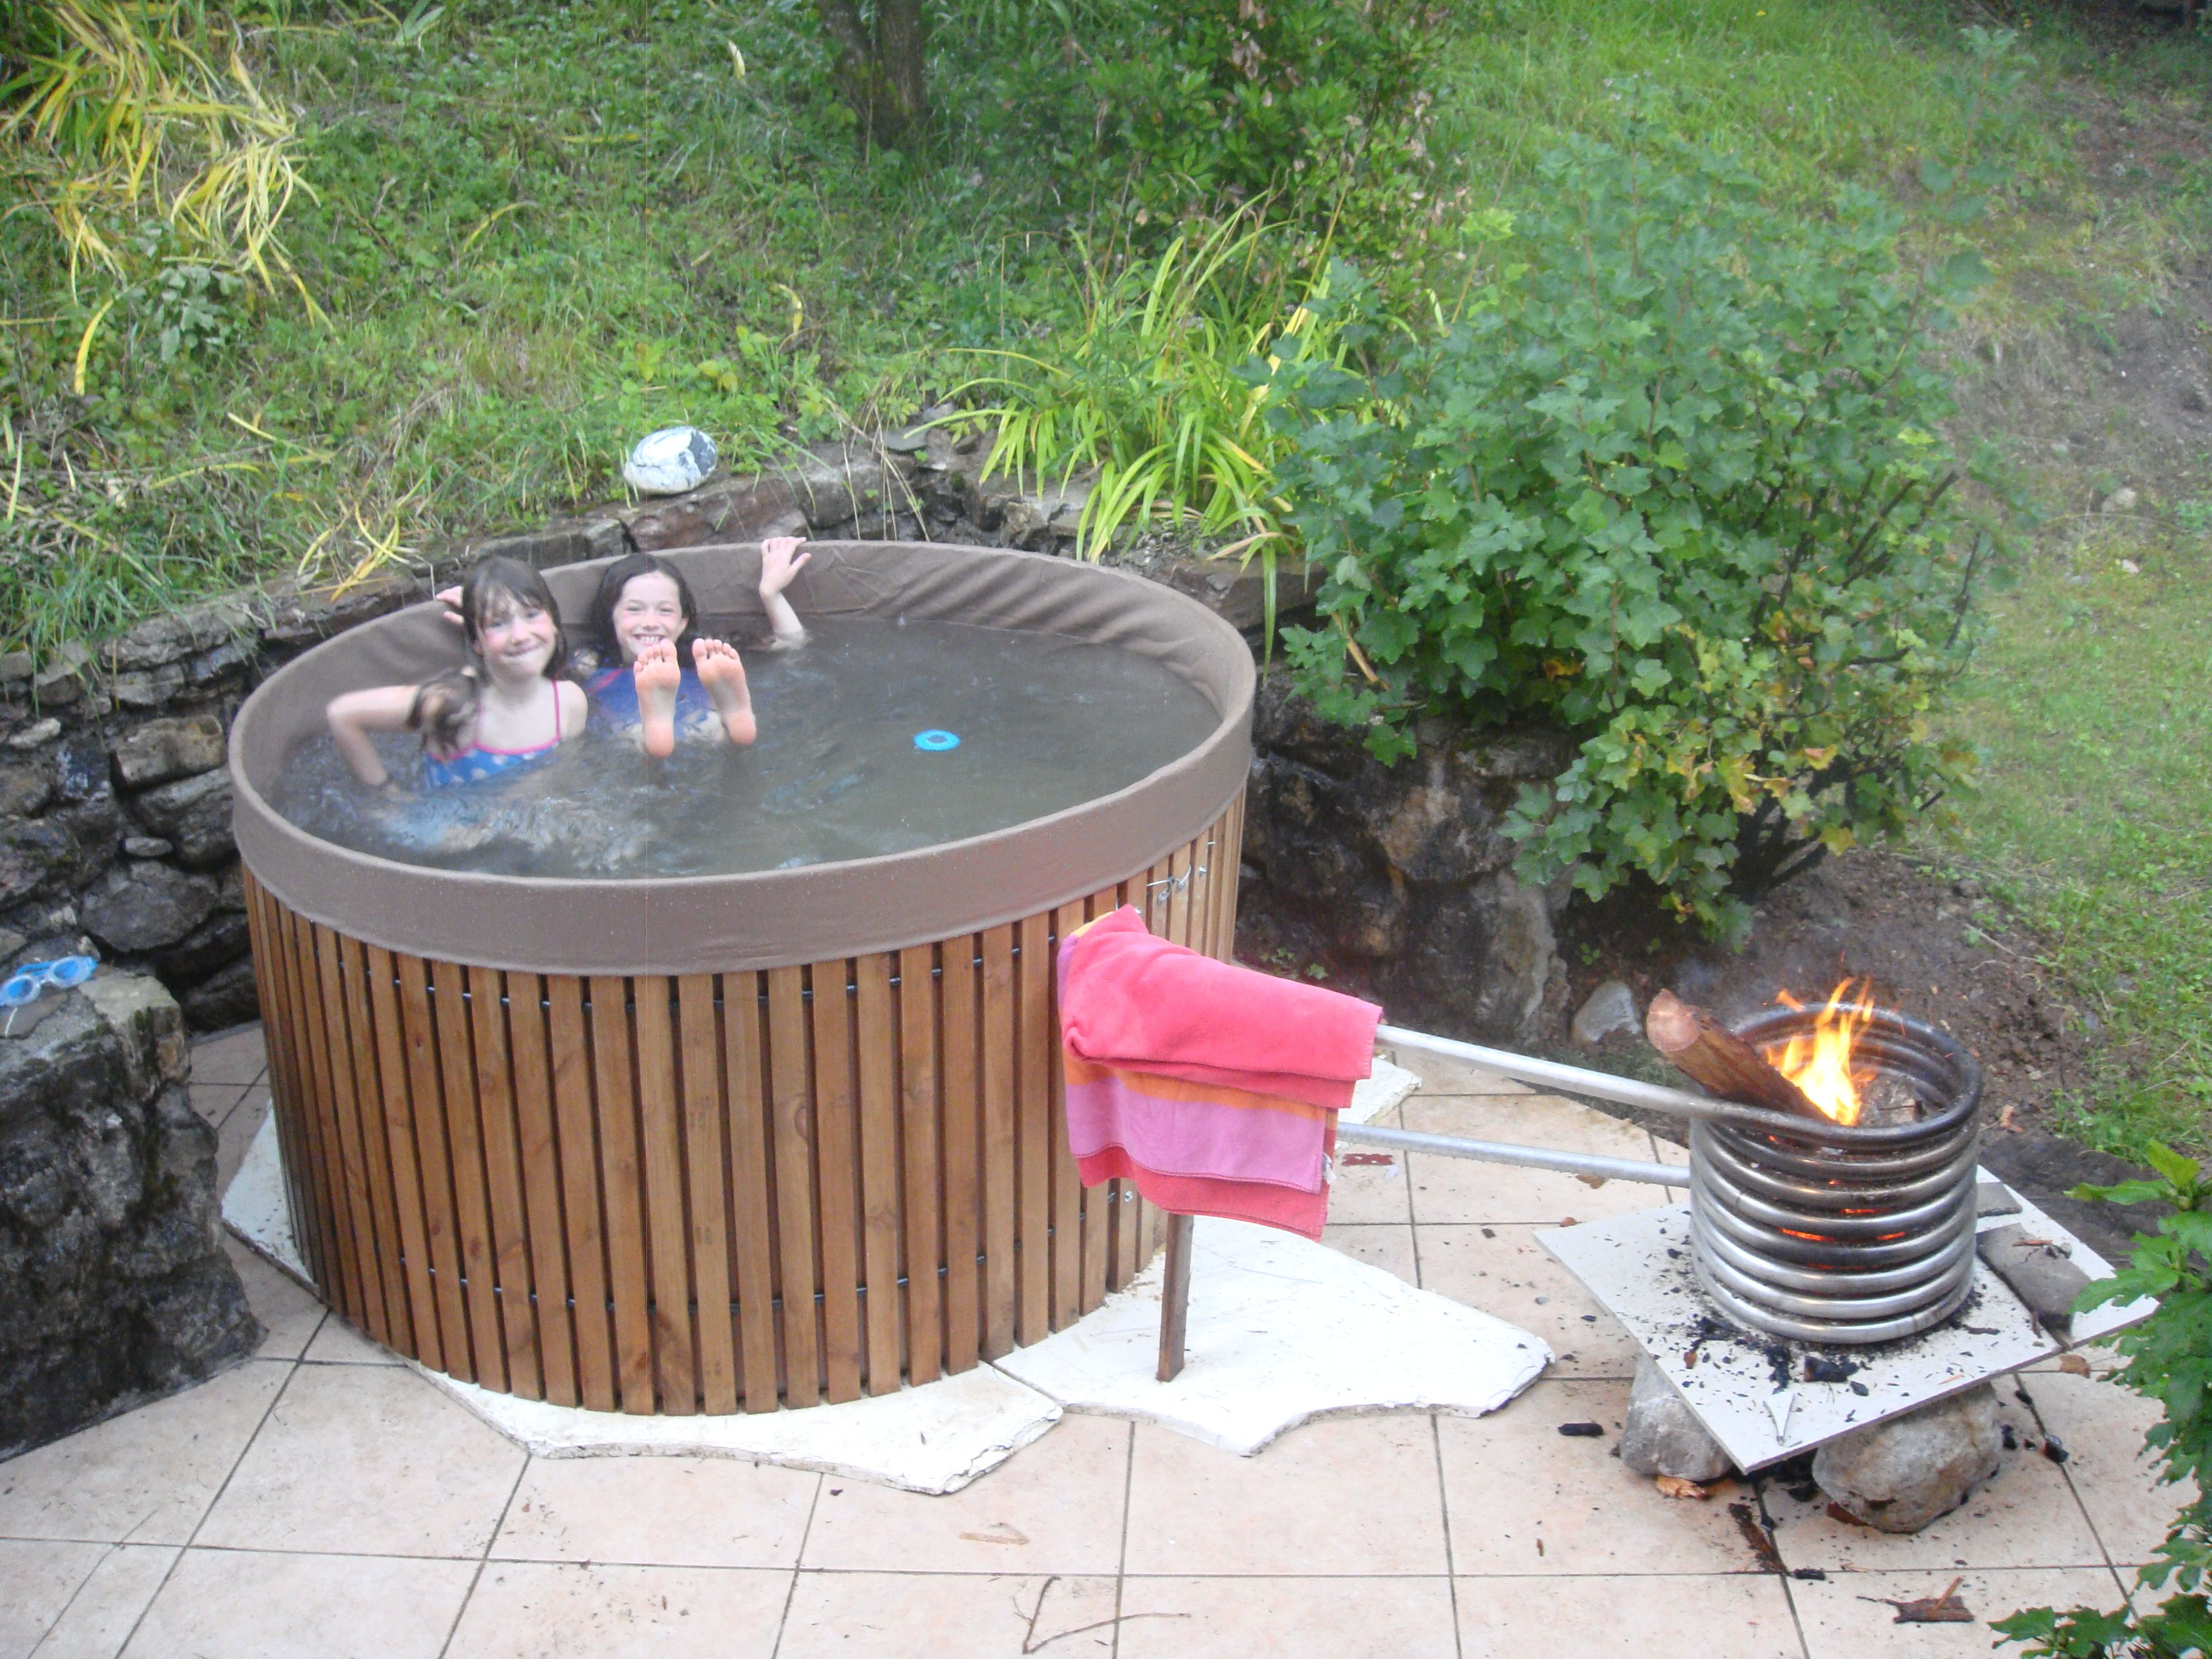 Cheap diy hot tub jacuzzi 4 - Diy Hottub Bath Temp Degrees In 4 Hours Just A Wood Fire Inside Pipe Spiral Hot Water Rises And Draws In Cooler Water From Below Making Thermal